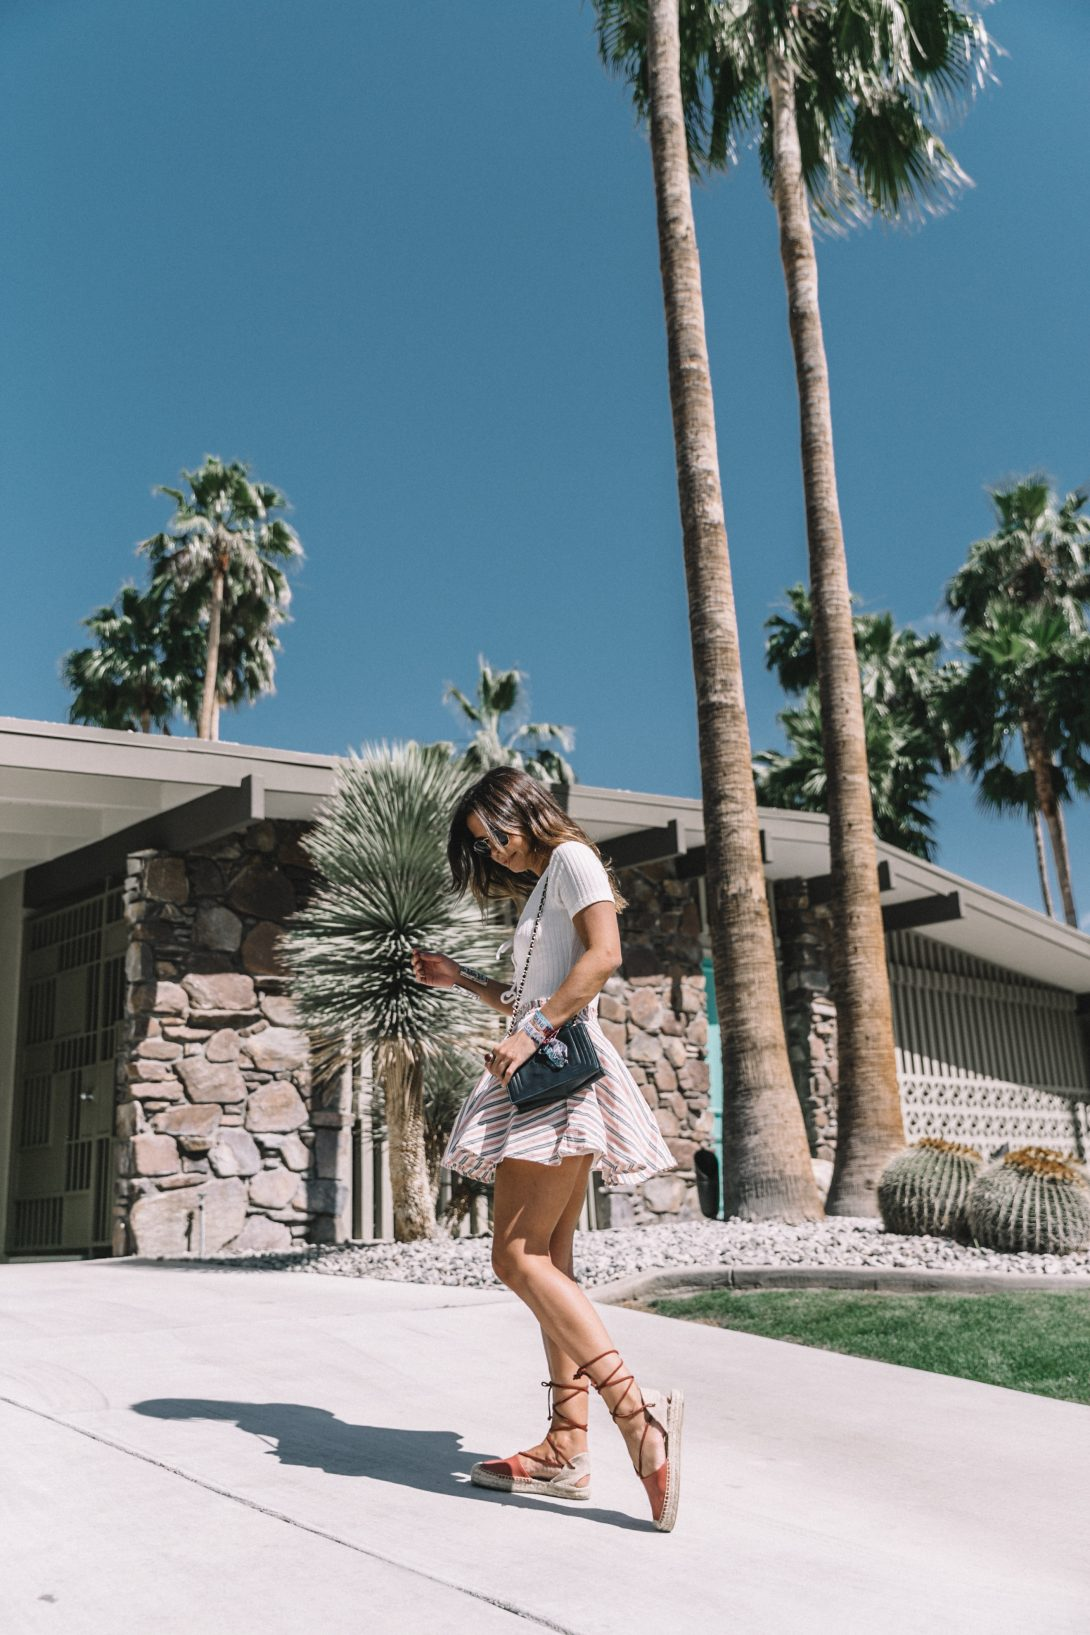 Lace_Up_Body-Privacy_Please-Revolve_Clothing-Striped_Mini_Skirt-Soludos_Espadrilles-Palm_Springs-Outfit-Collage_Vintage-80